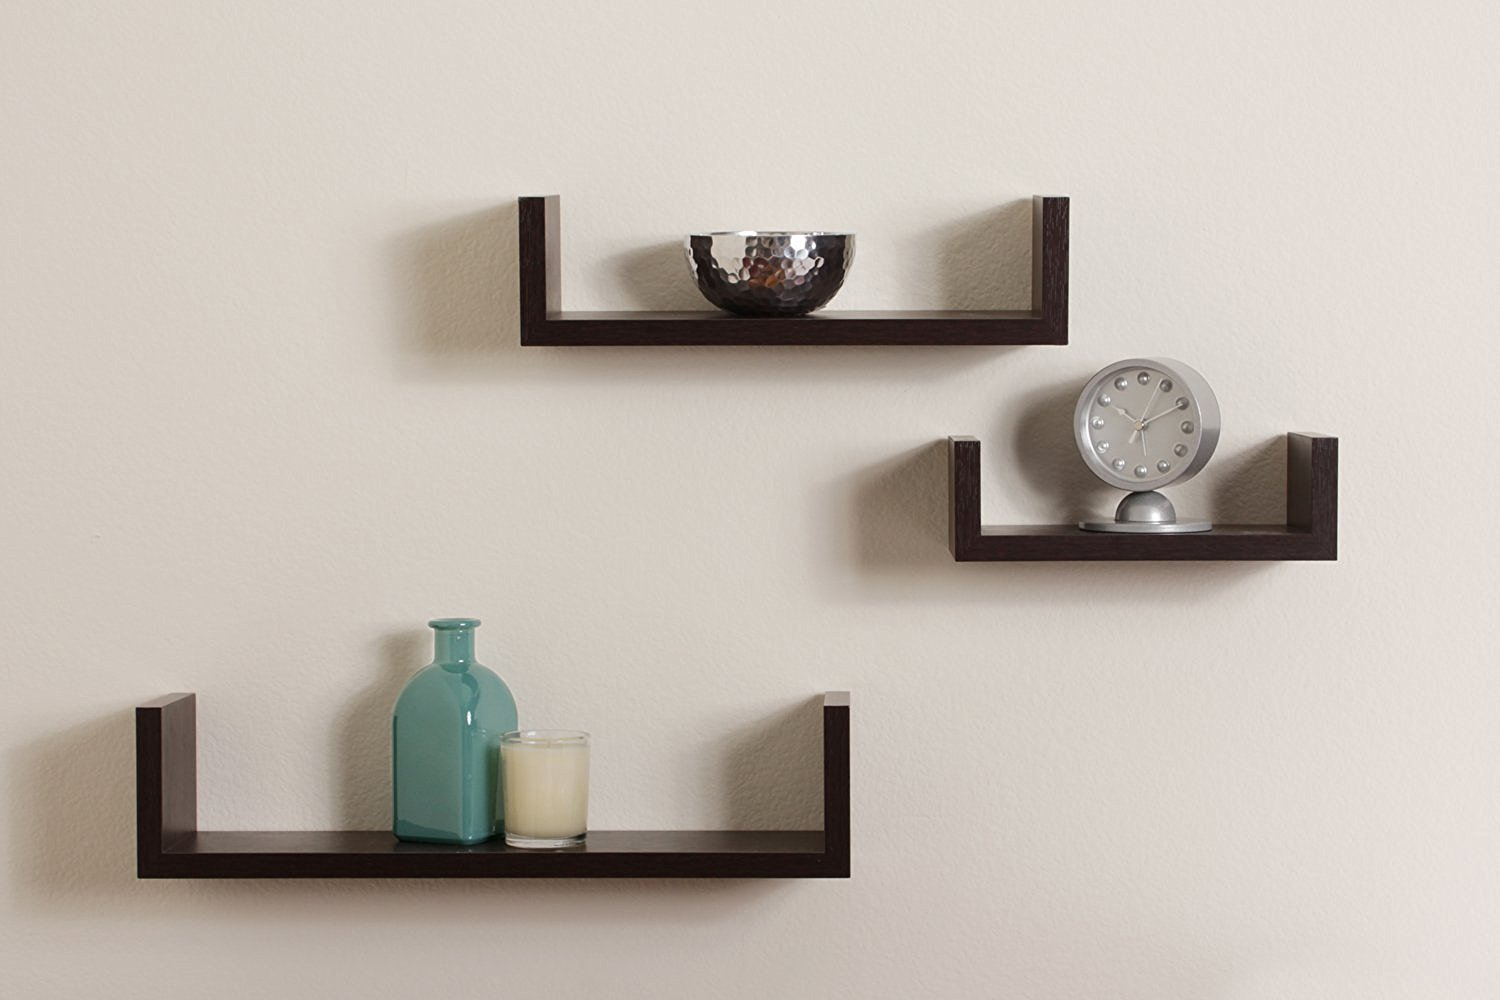 Pictures Of Wall Shelves Top 16 Black Floating Wall Shelves Of 2016 2017 Review